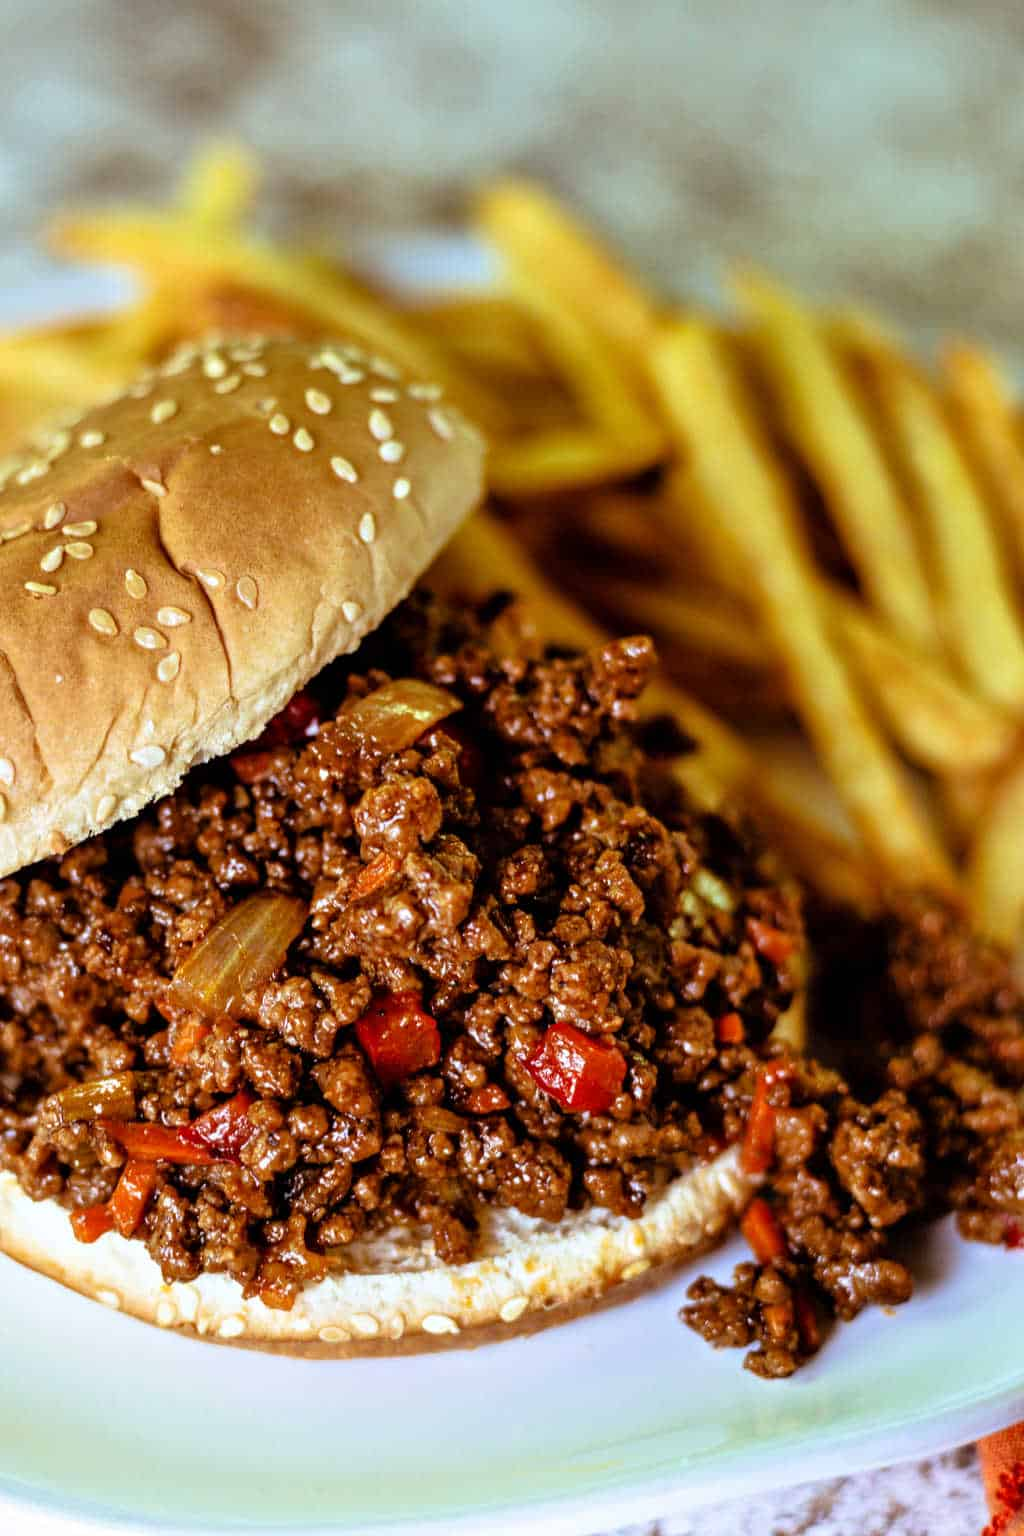 Sloppy Joe Sandwich on a white plate with french fries